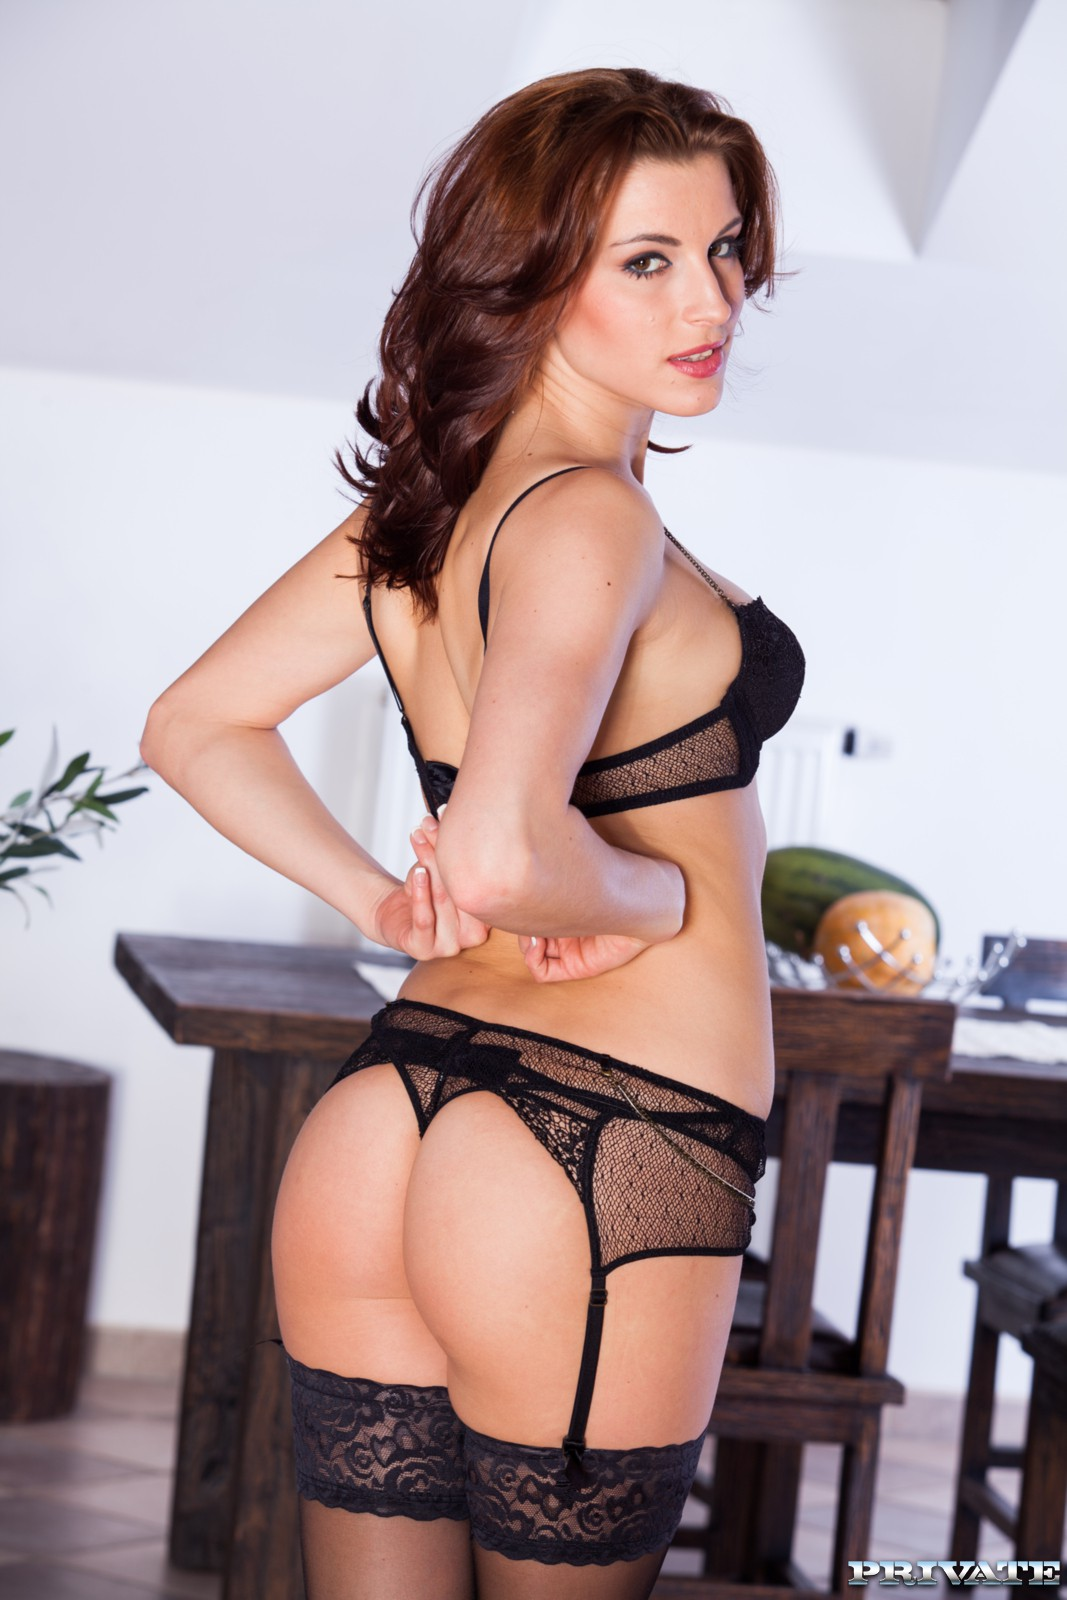 image Czech babe victoria daniels obviously a czech name fucked hard